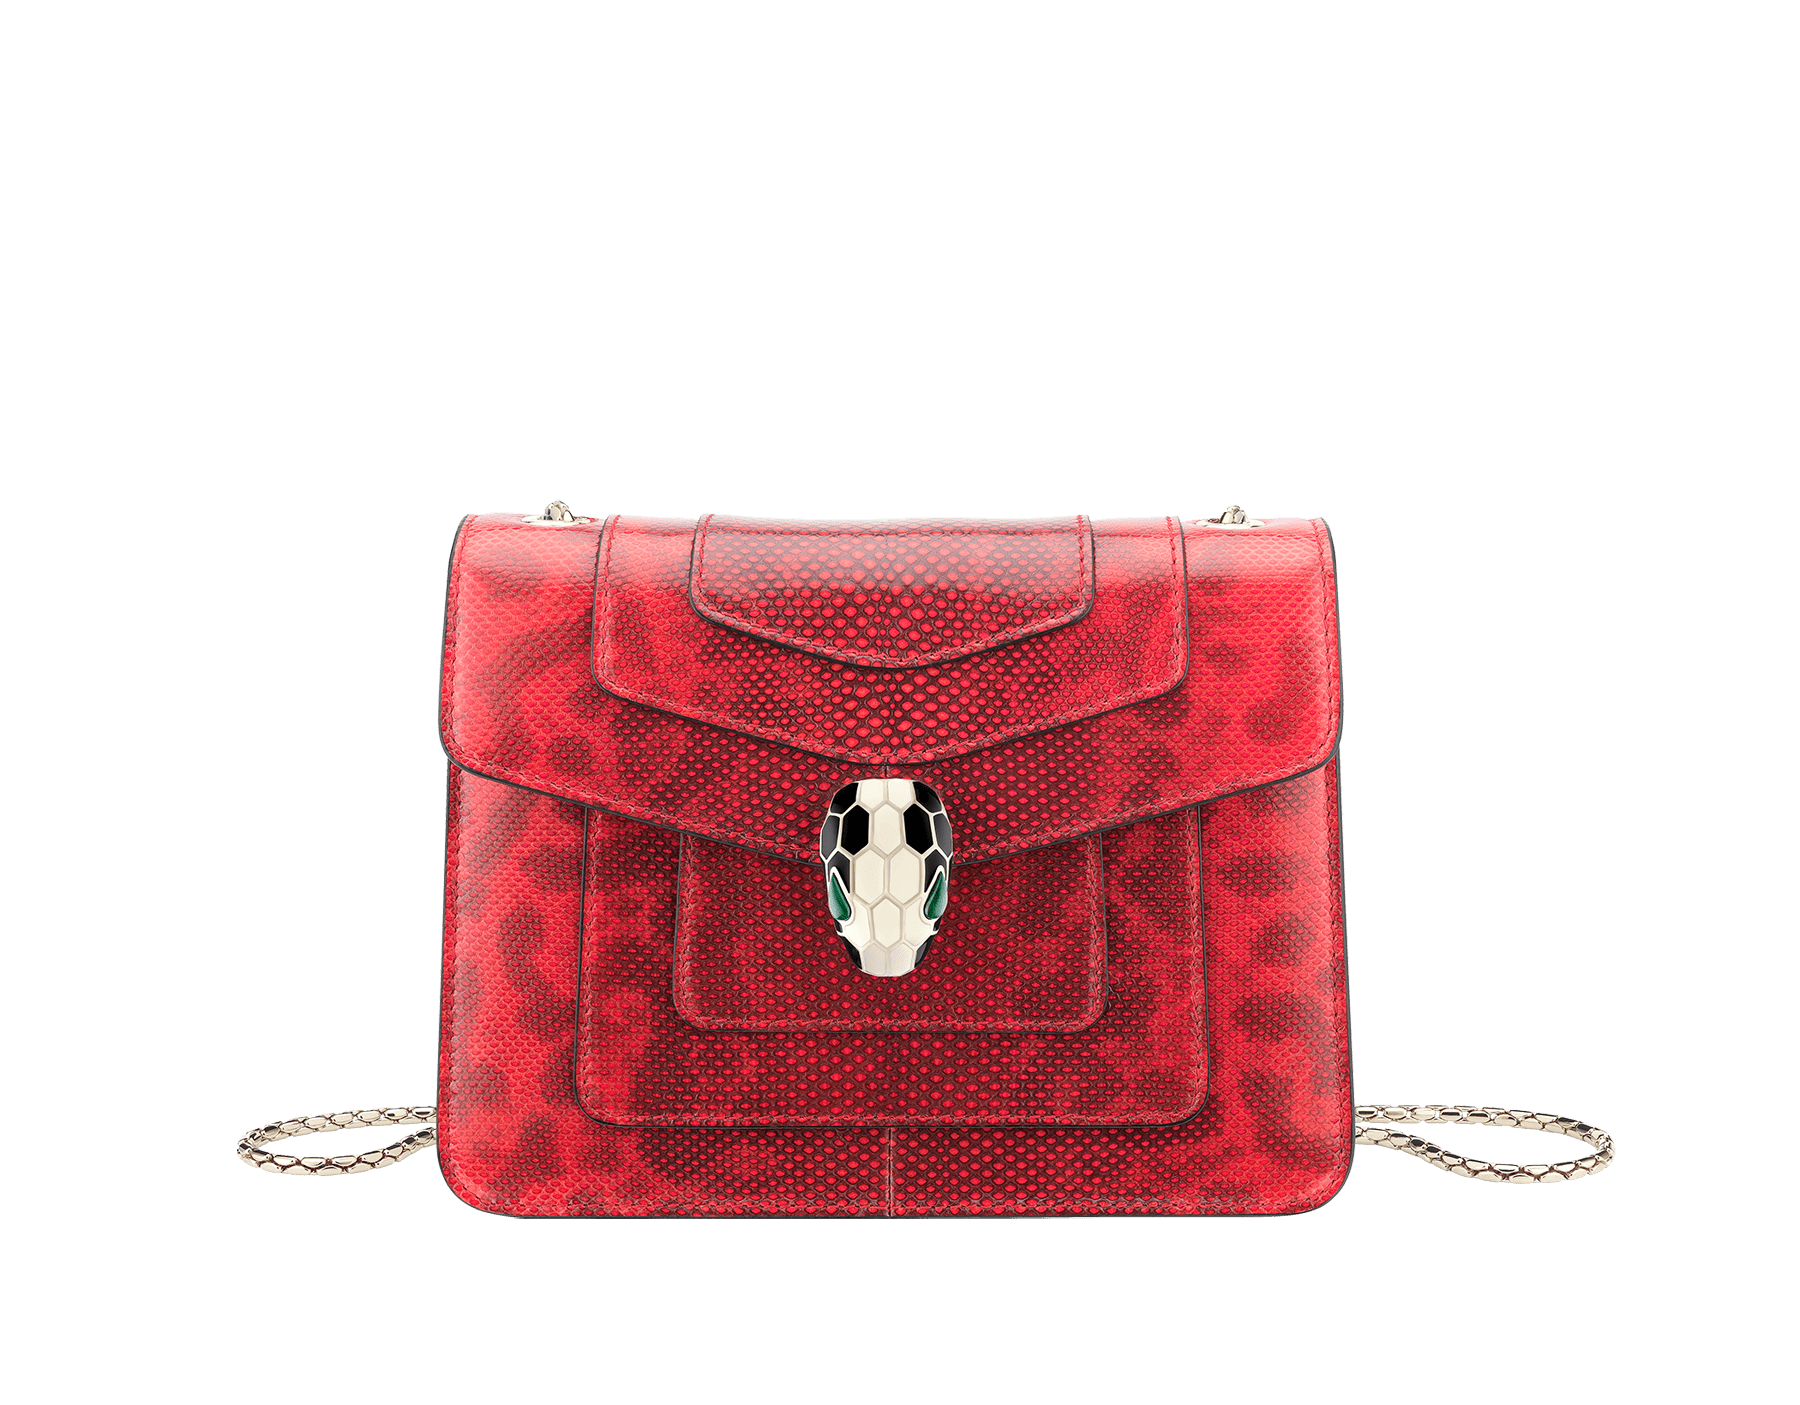 Serpenti Forever crossbody bag in sea star coral shiny karung skin. Snakehead closure in light gold plated brass decorated with black and white enamel, and green malachite eyes. 287911 image 1